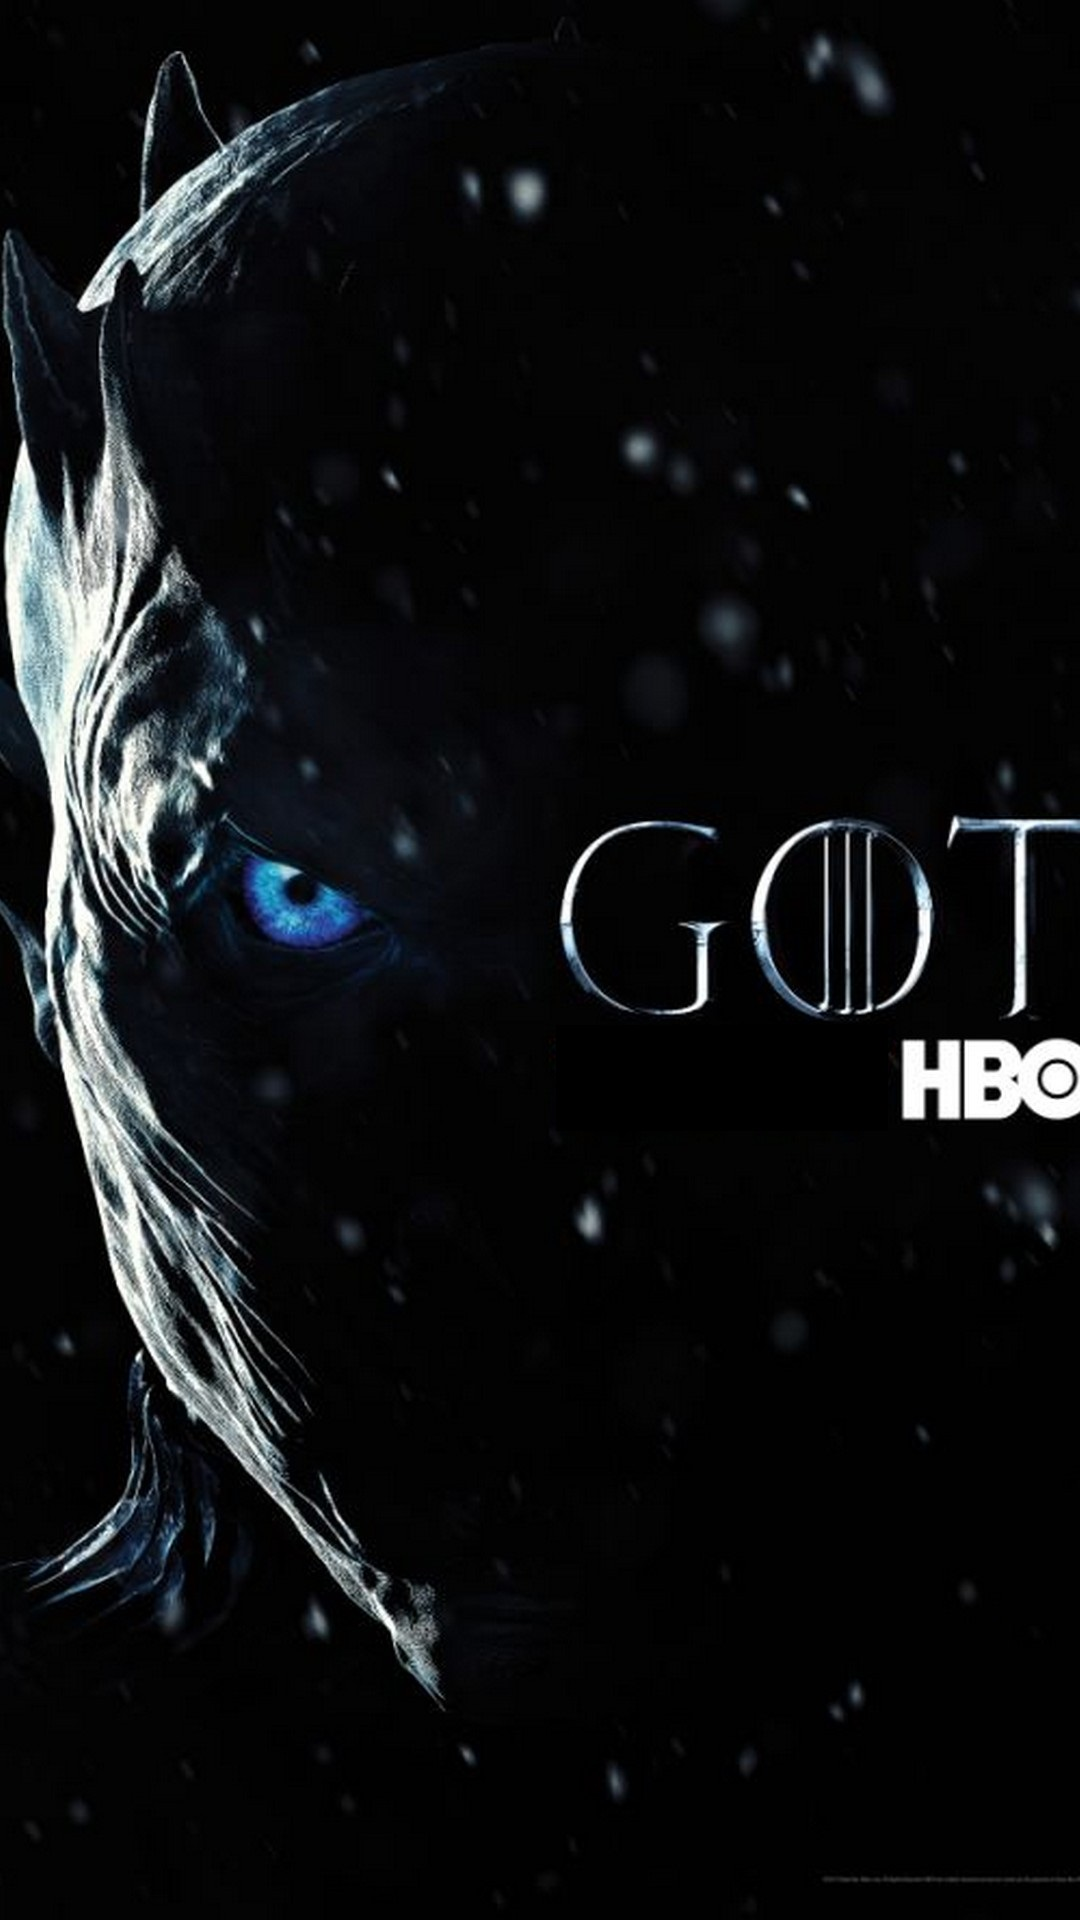 Game of Thrones Wallpaper For iPhone 2019 3D iPhone Wallpaper 1080x1920